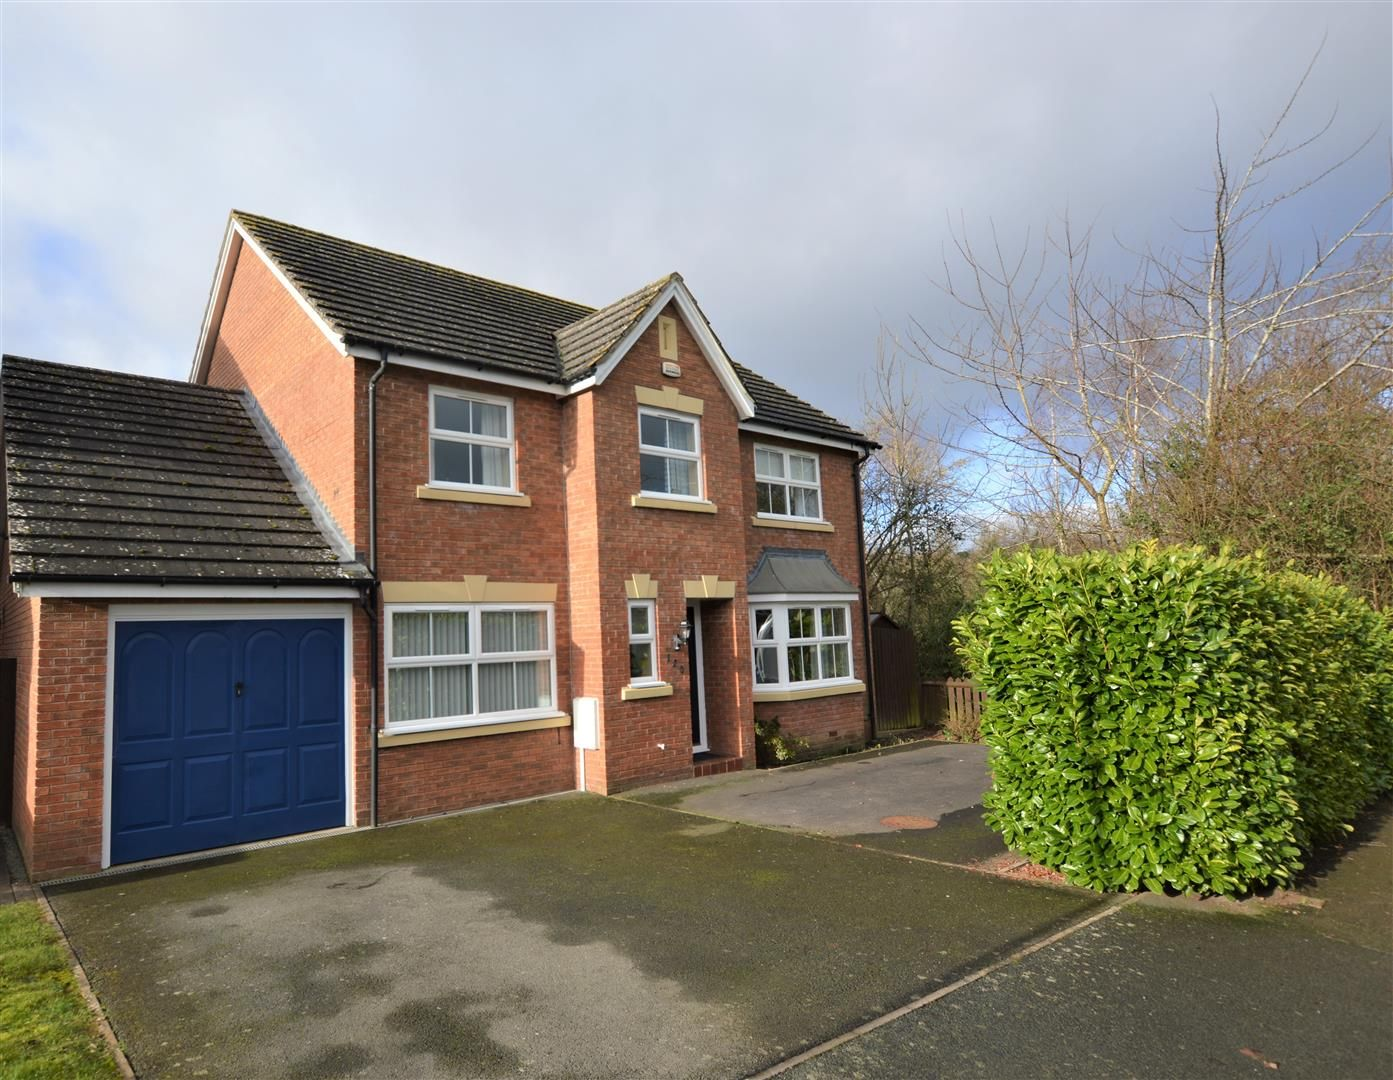 5 bed detached for sale in Leominster 1